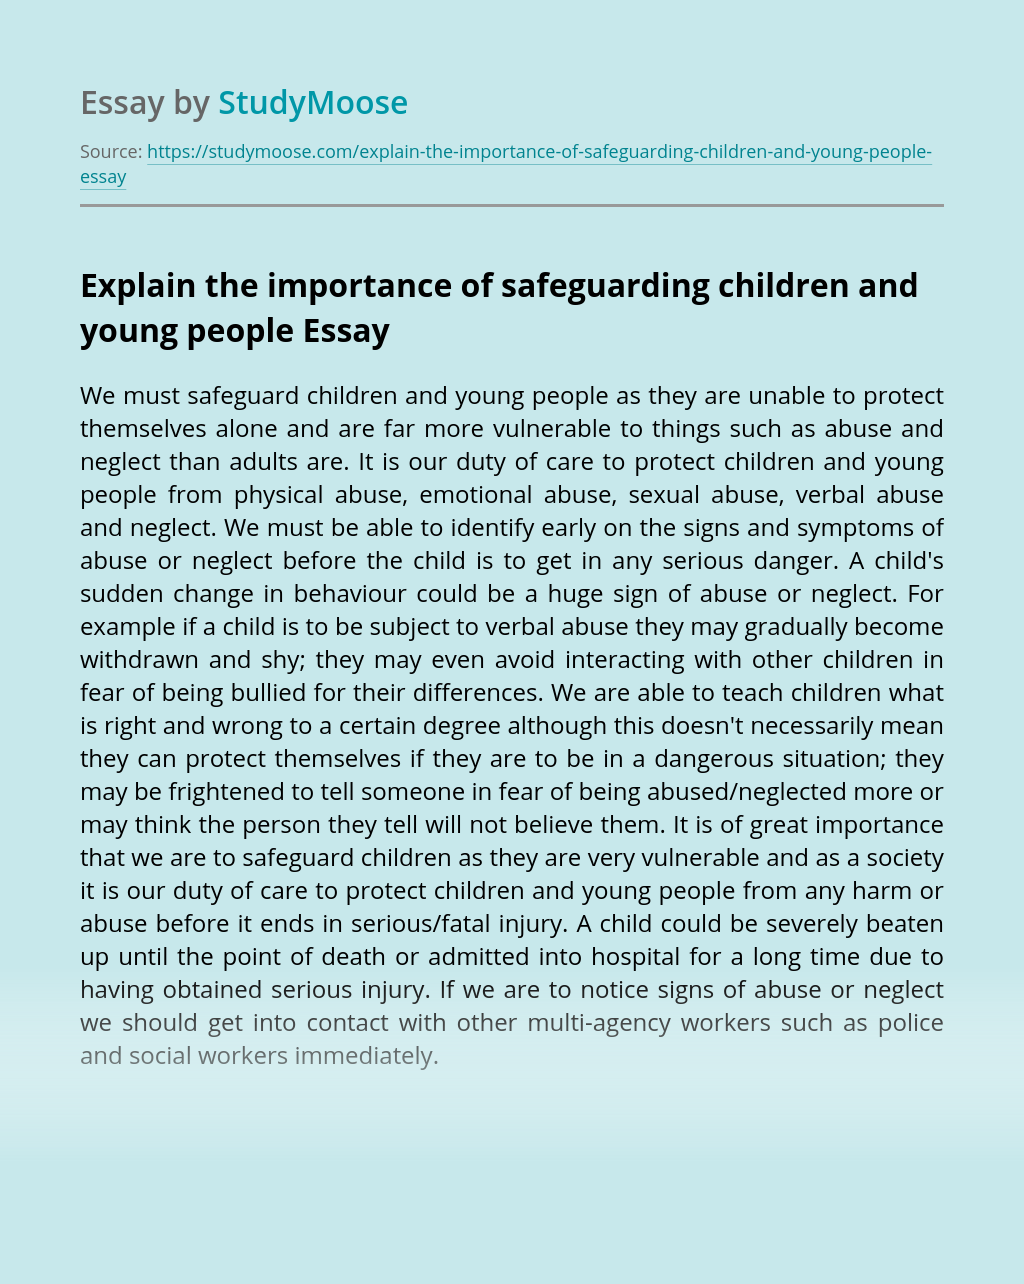 Explain the importance of safeguarding children and young people